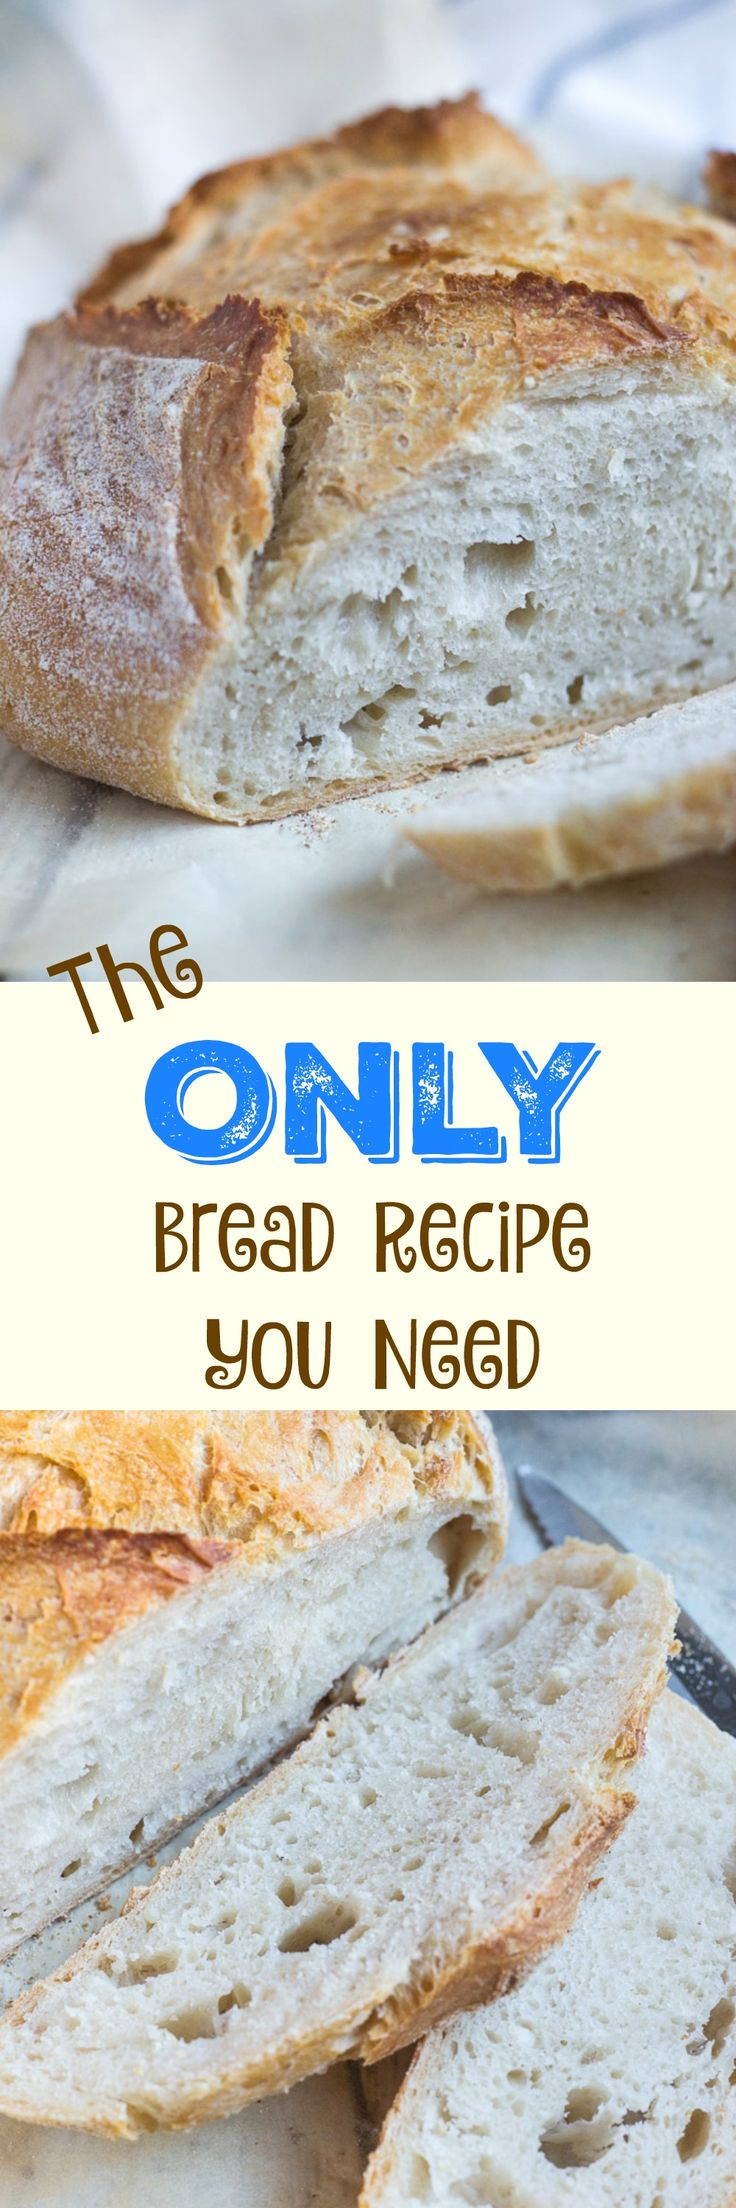 Artisan Bread in 5 Minutes a Day. No kneading, no rising. With a bucket of dough in the fridge, a quick meal is really only 5 minutes away.